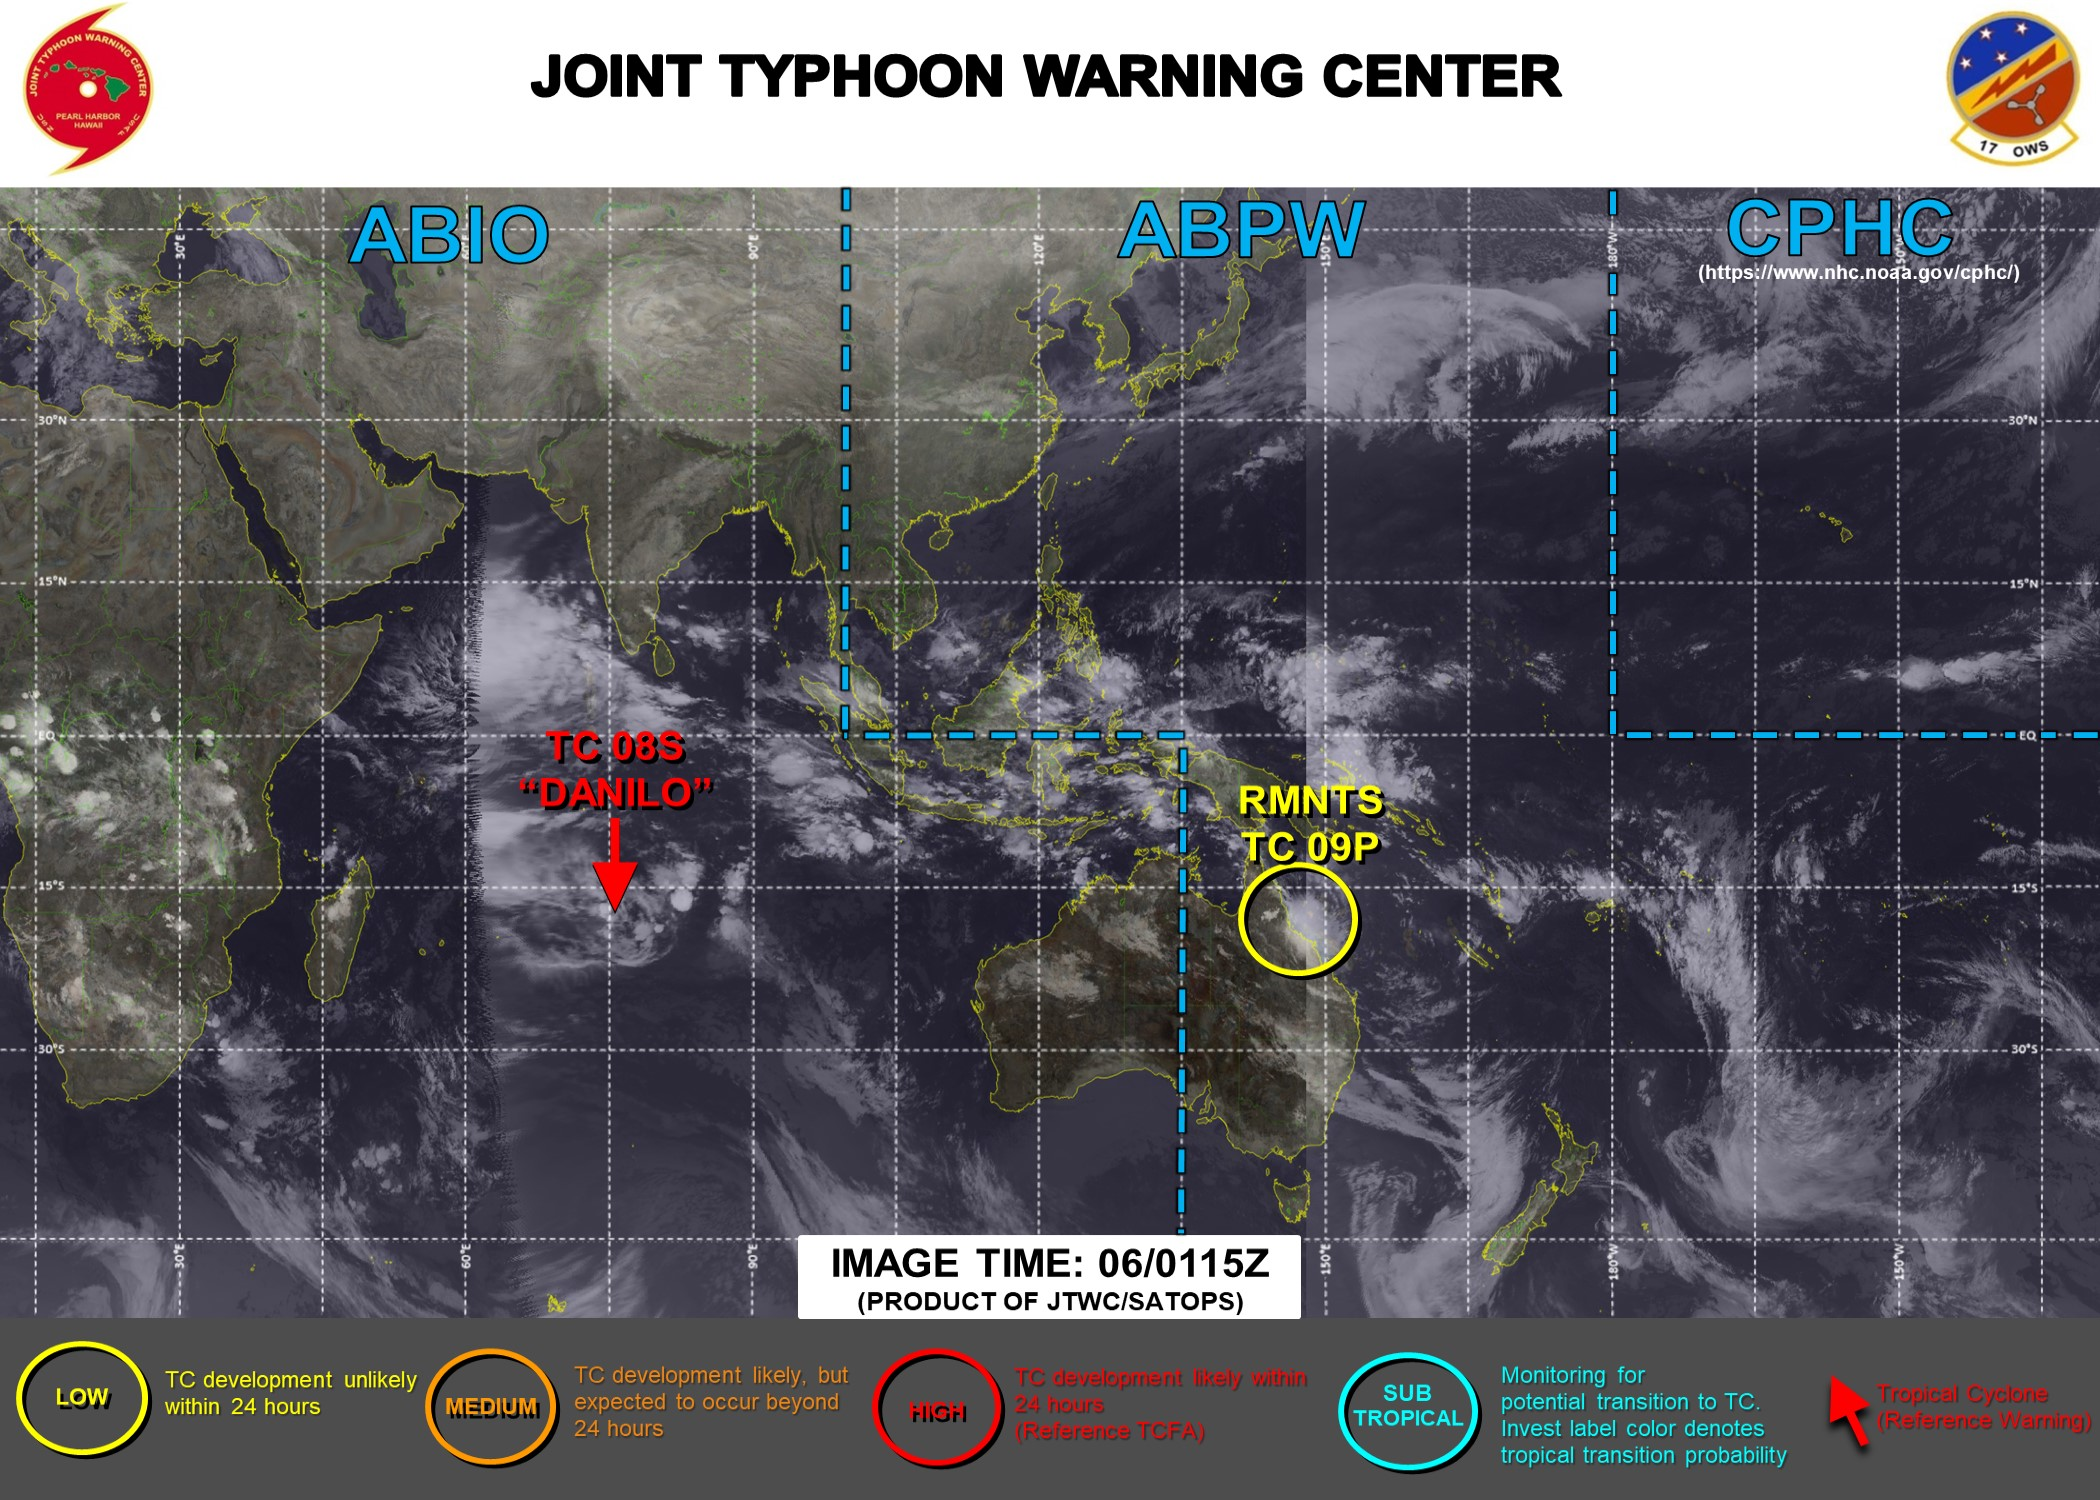 06/0115UTC. JTWC HAVE BEEN MONITORING THE REMNANTS OF TC 09P(IMOGEN) WHICH IS BACK OVER OPEN WATER APPROXIMATELY 150 KM SOUTH-SOUTHEAST OF CAIRNS, AUSTRALIA.